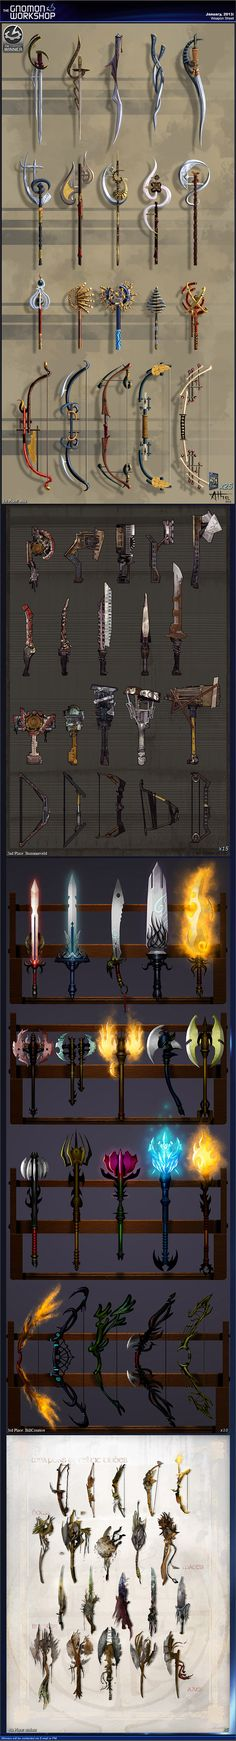 Mythic Weapons.